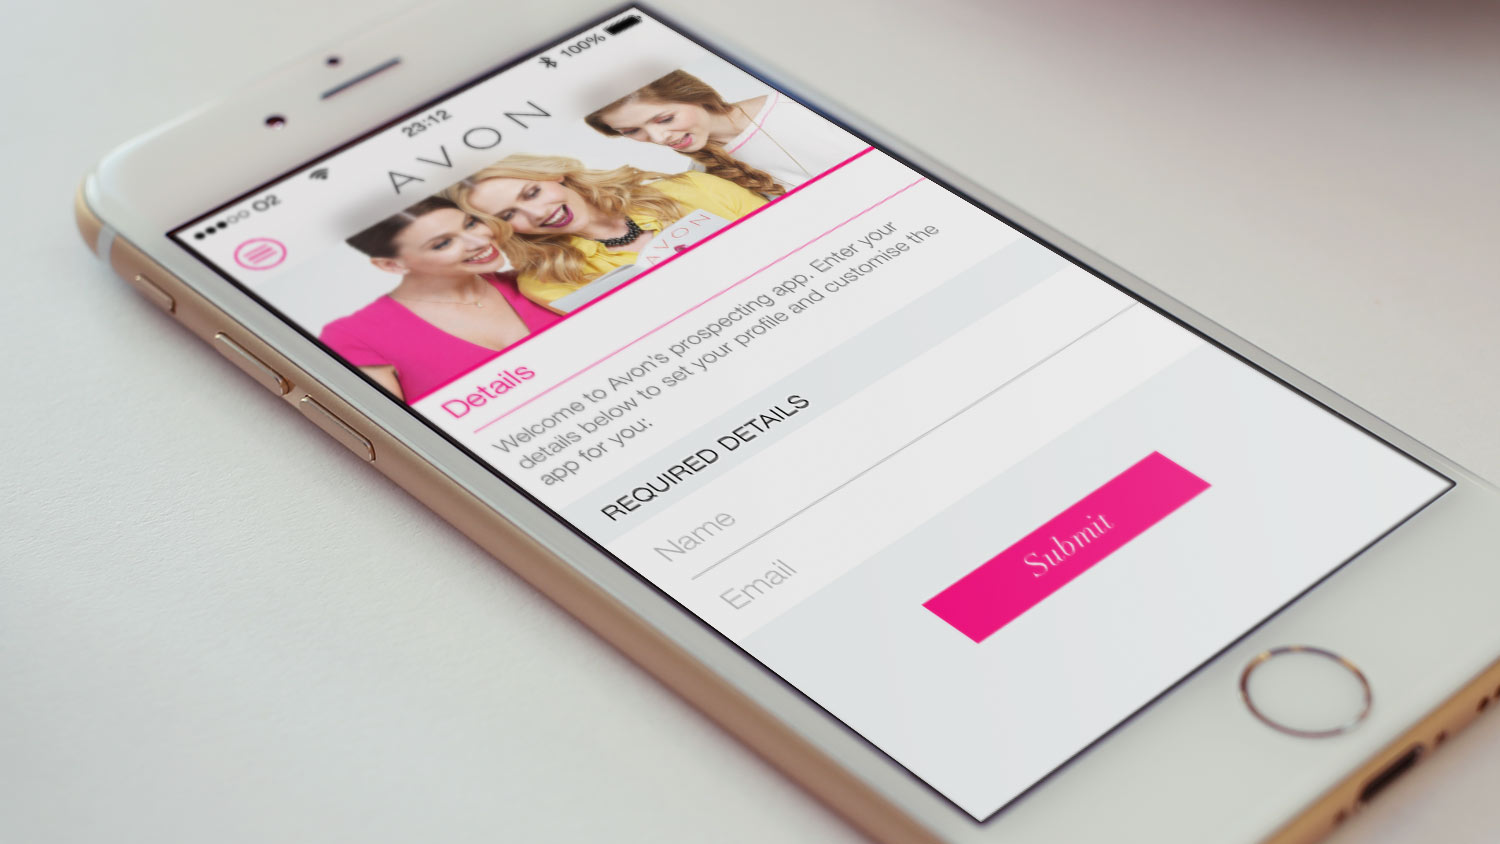 AVON corporate recruitment mobile app, shown on an iPhone